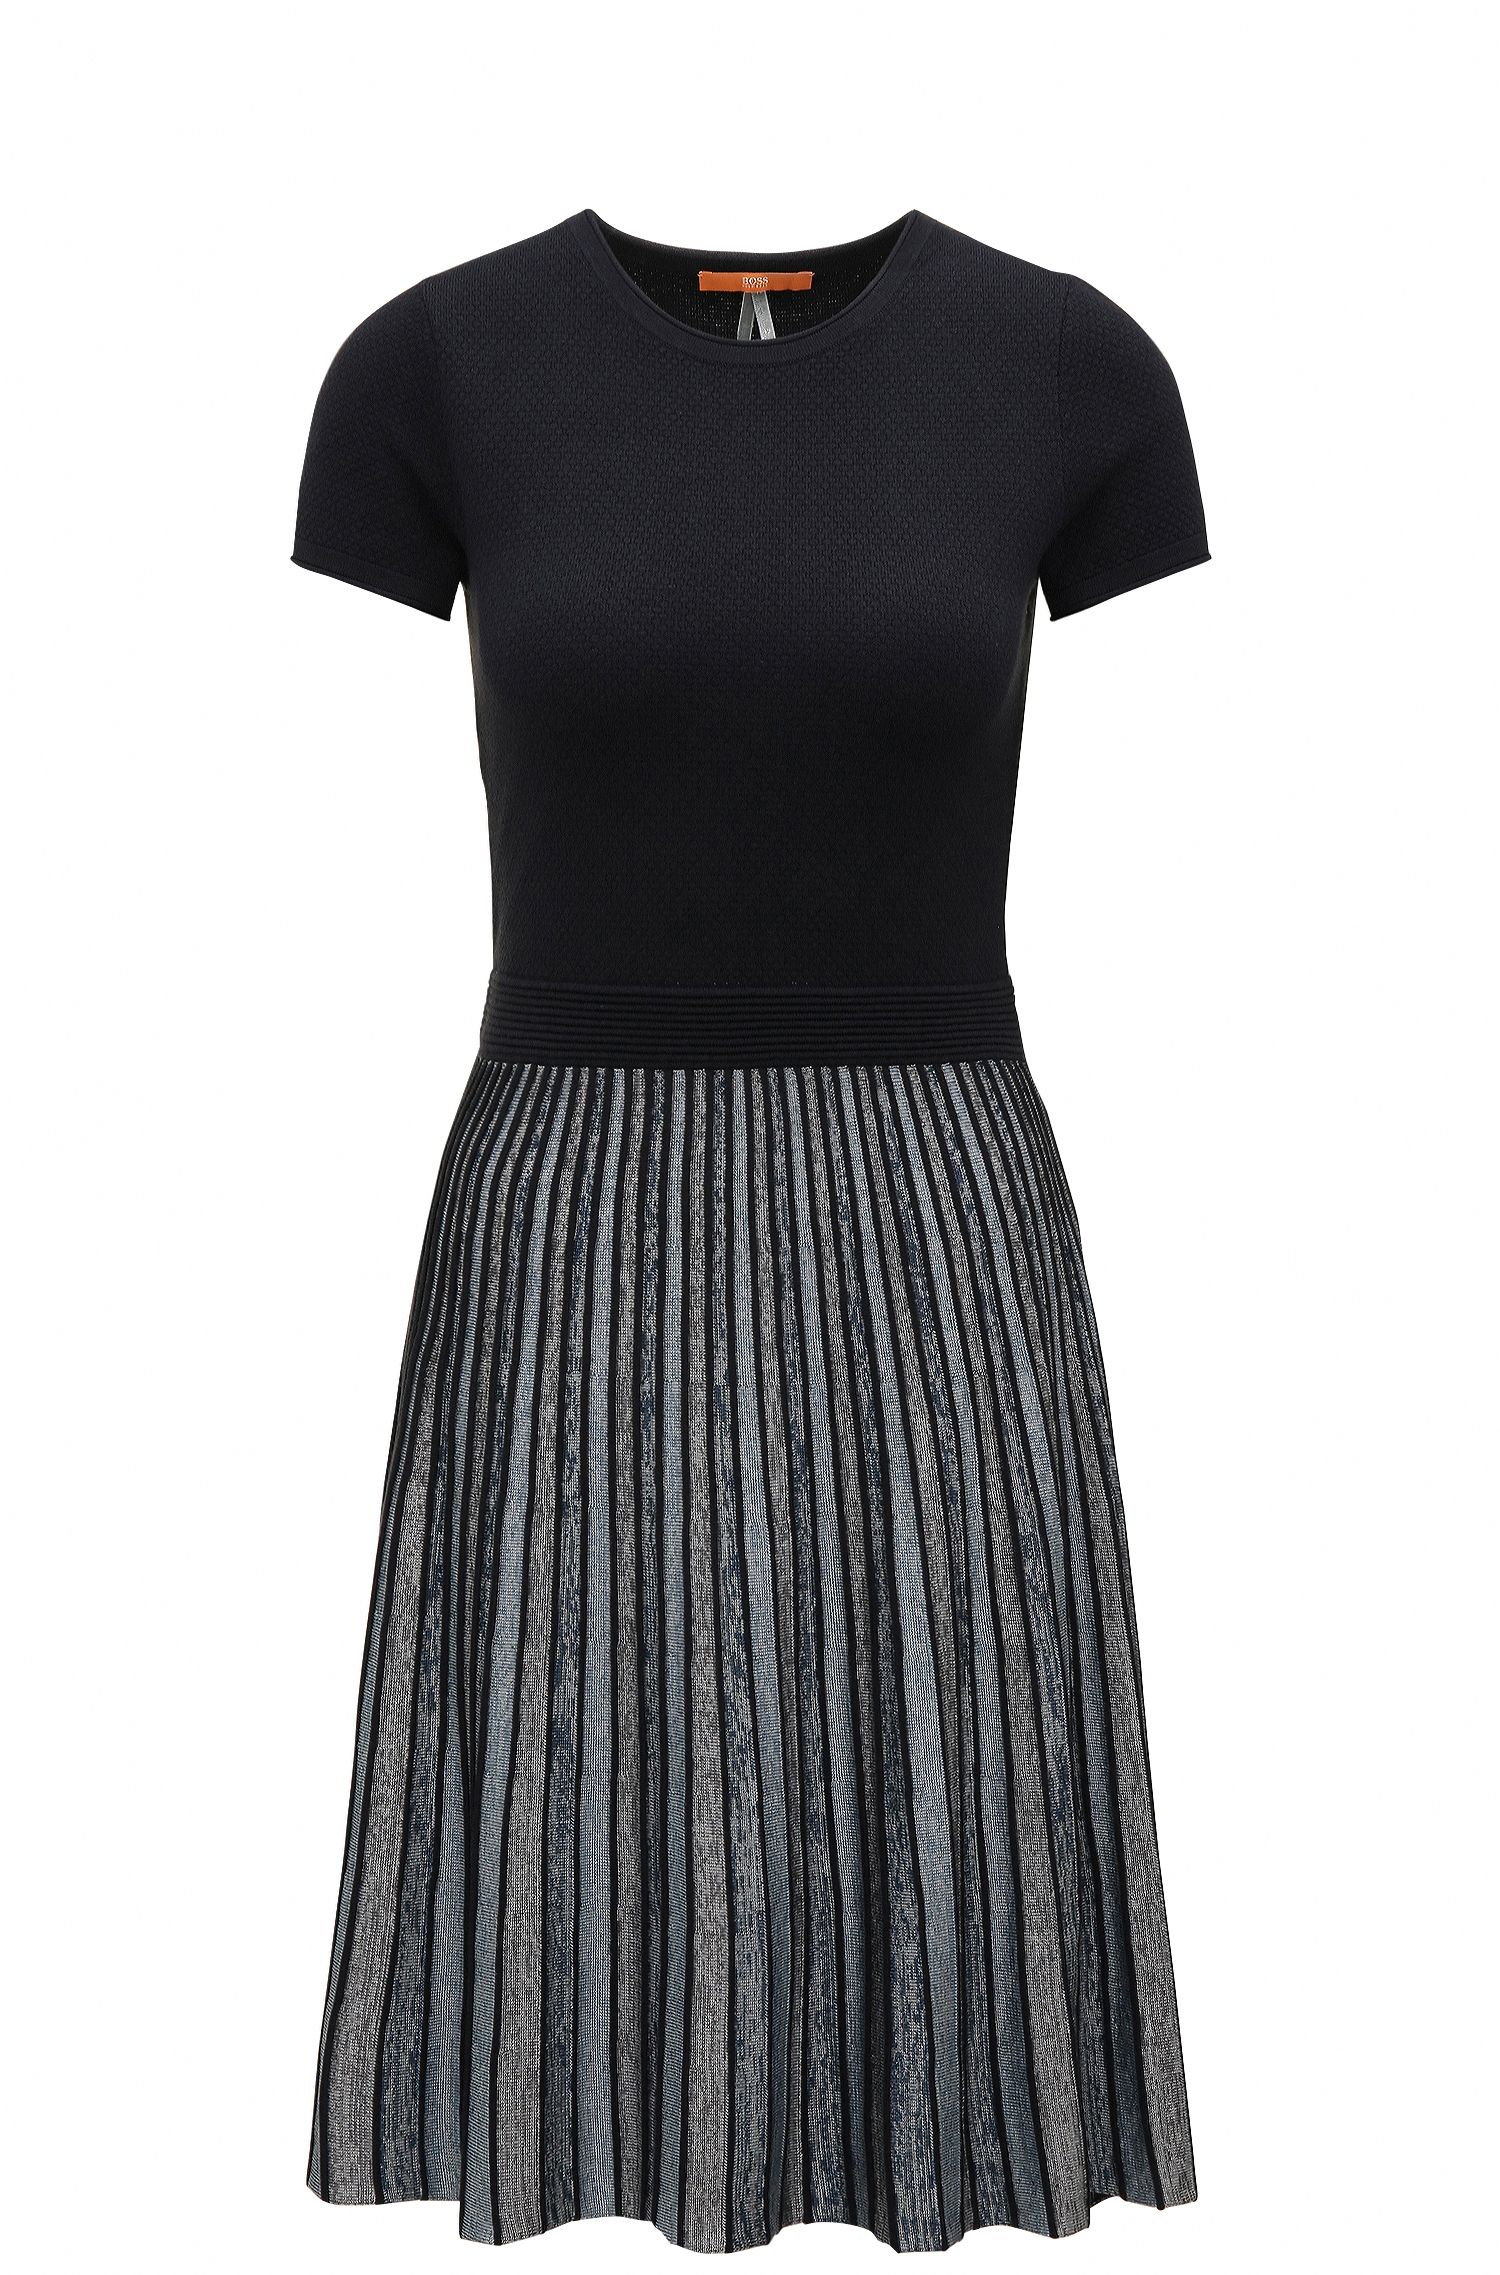 Slim-fit waisted dress in knitted and striped fabrics